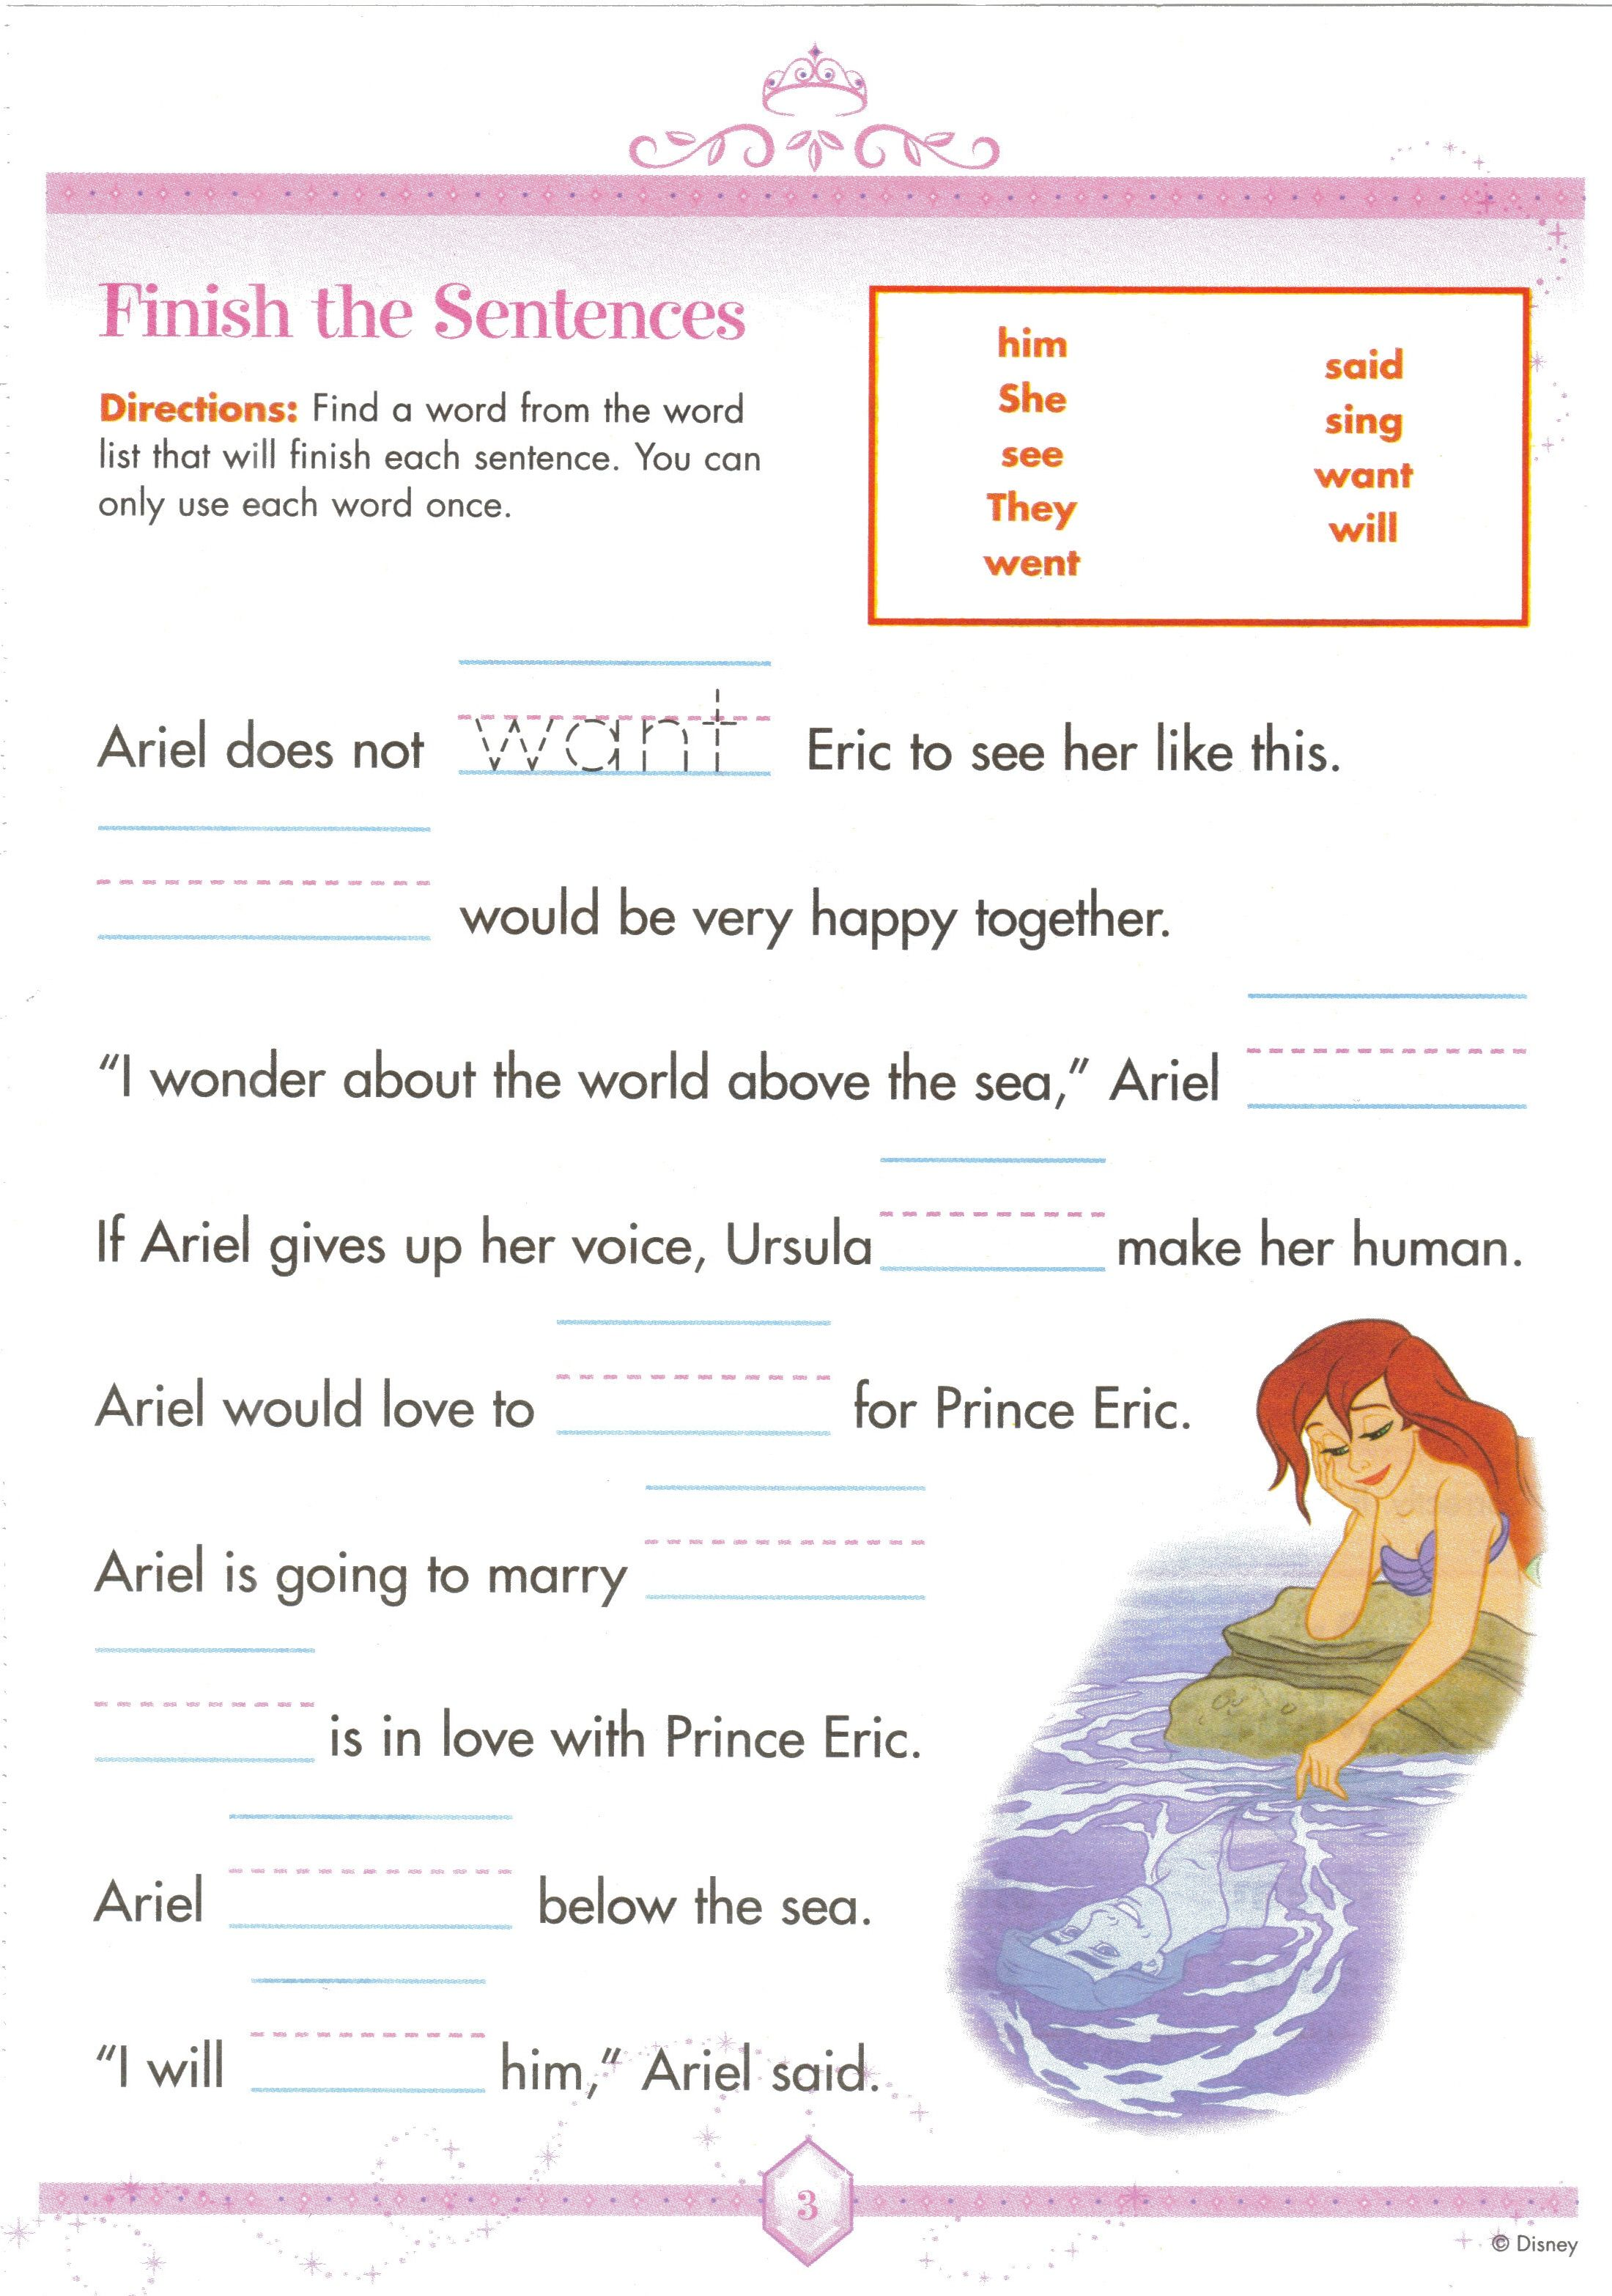 Weirdmailus  Unique  Images About Worksheets On Pinterest  Fun Facts For Kids  With Gorgeous  Images About Worksheets On Pinterest  Fun Facts For Kids Earth Day Worksheets And Jungles With Enchanting Multiplying Fractions Worksheets With Answers Also Free Printable Multiplication Worksheets Grade  In Addition Money Printable Worksheets And Addition Without Regrouping Worksheets As Well As Science Worksheets For First Grade Additionally  Times Table Worksheets From Pinterestcom With Weirdmailus  Gorgeous  Images About Worksheets On Pinterest  Fun Facts For Kids  With Enchanting  Images About Worksheets On Pinterest  Fun Facts For Kids Earth Day Worksheets And Jungles And Unique Multiplying Fractions Worksheets With Answers Also Free Printable Multiplication Worksheets Grade  In Addition Money Printable Worksheets From Pinterestcom